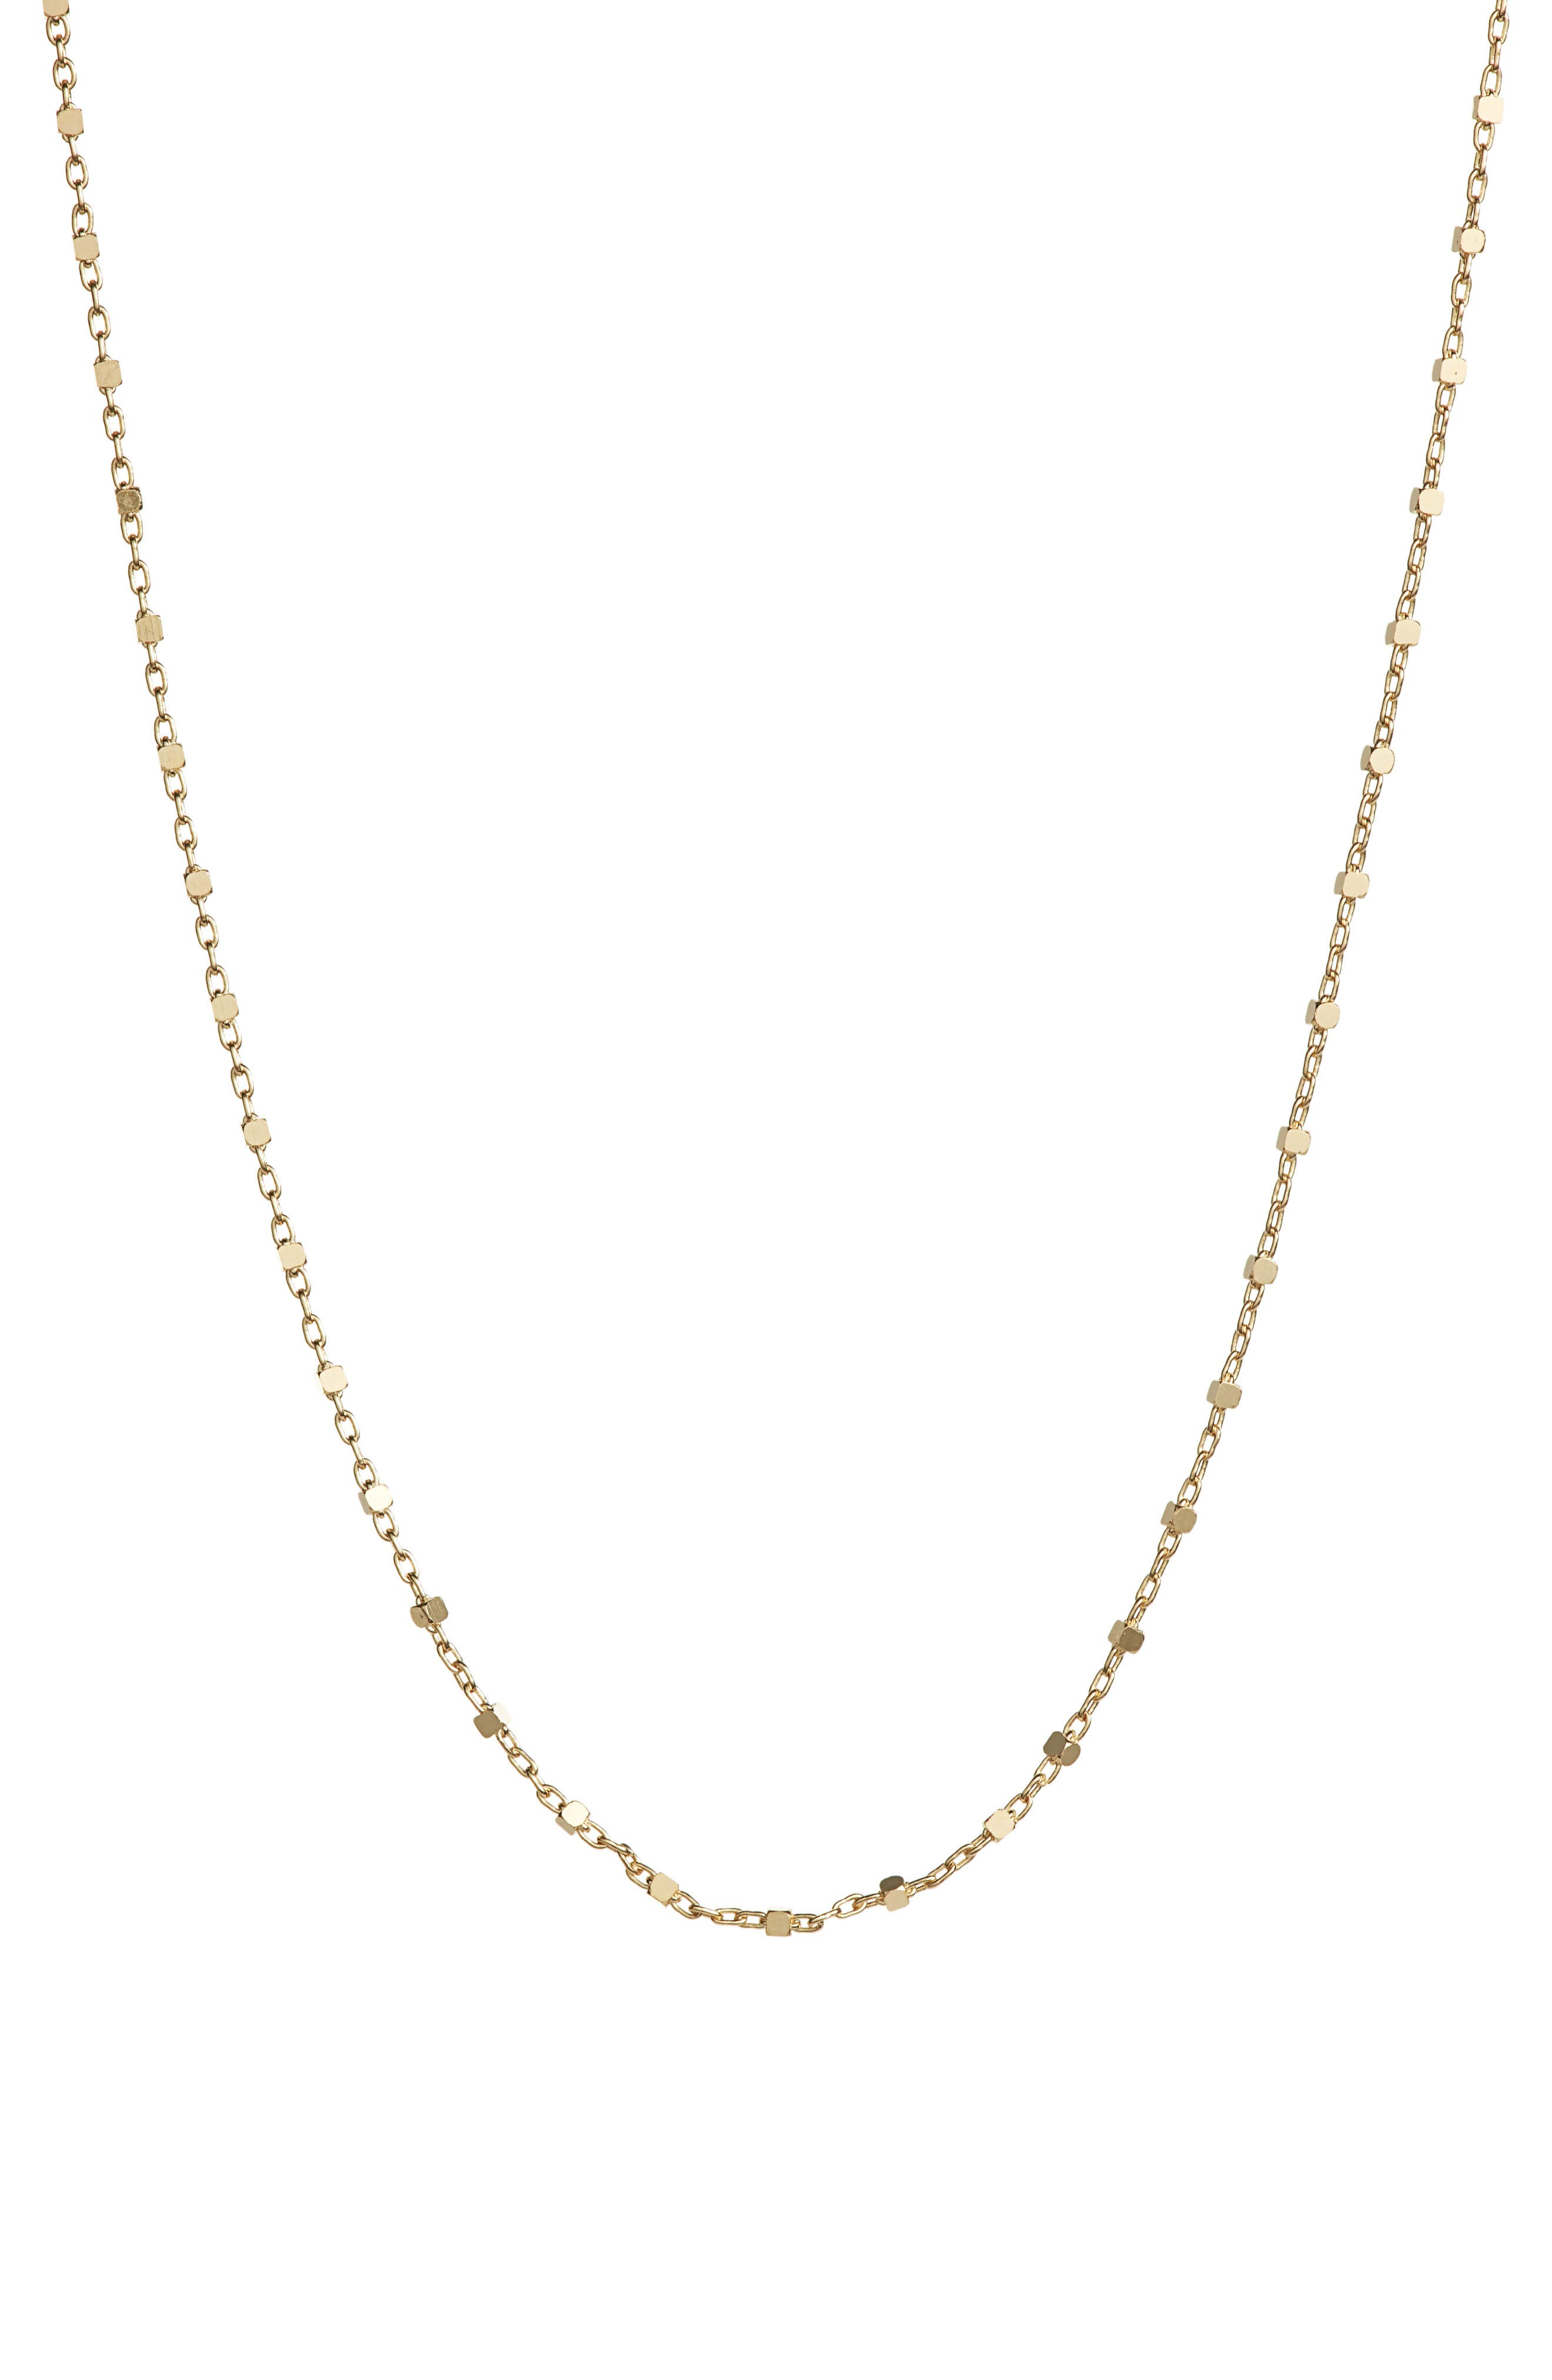 A polished chain necklace crafted in Italy gives off contemporary flair with cubic stations that shine within its delicate oval links. Style Name: Bony Levy Beaded Chain Necklace (Nordstrom Exclusive). Style Number: 5635375. Available in stores.